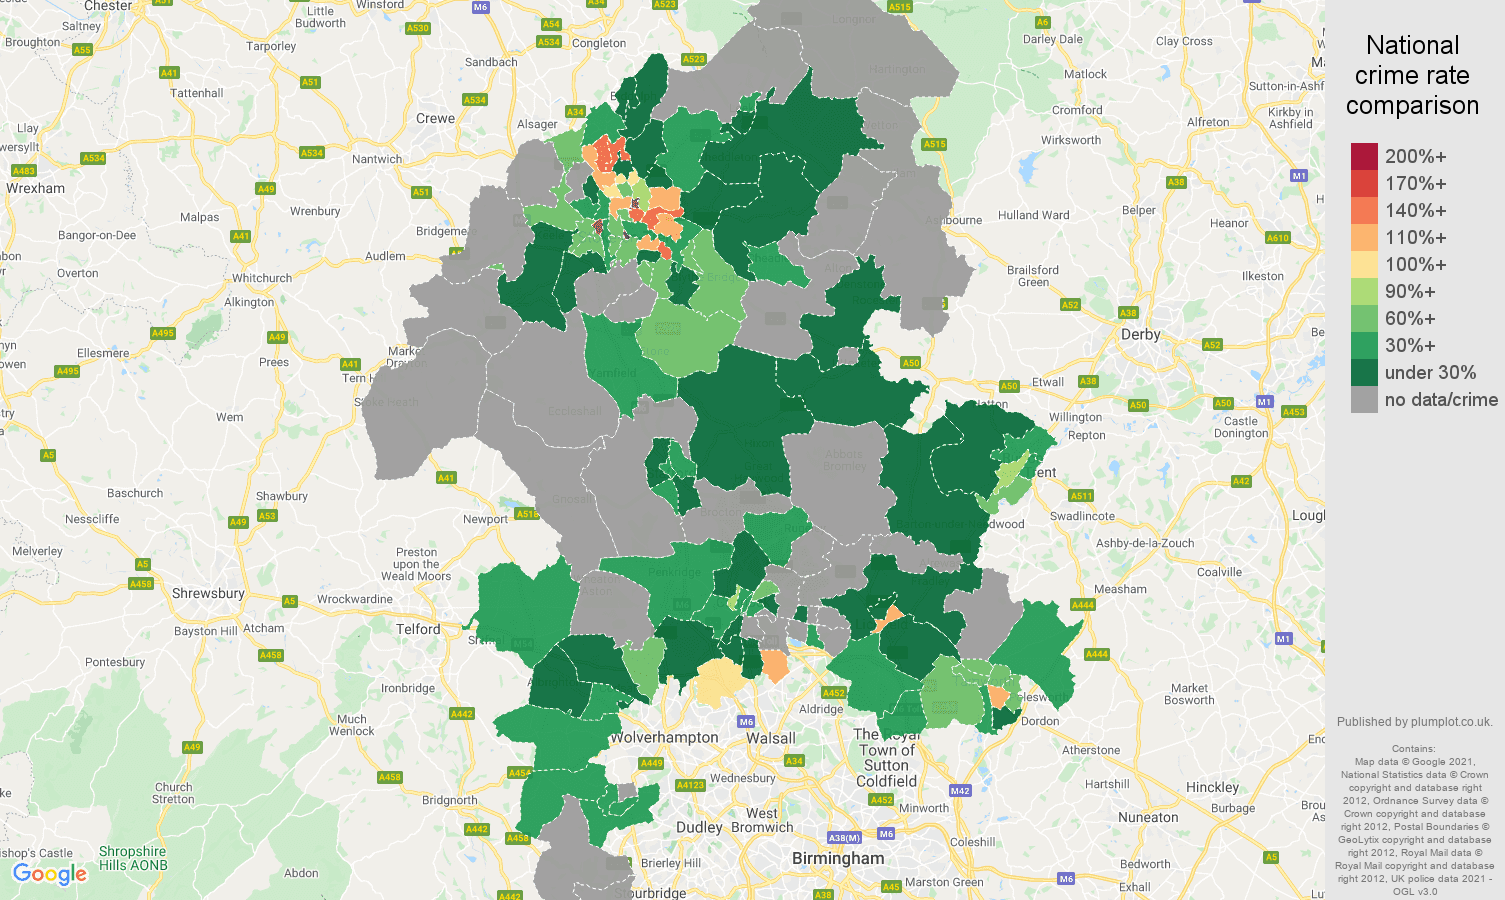 Staffordshire robbery crime rate comparison map